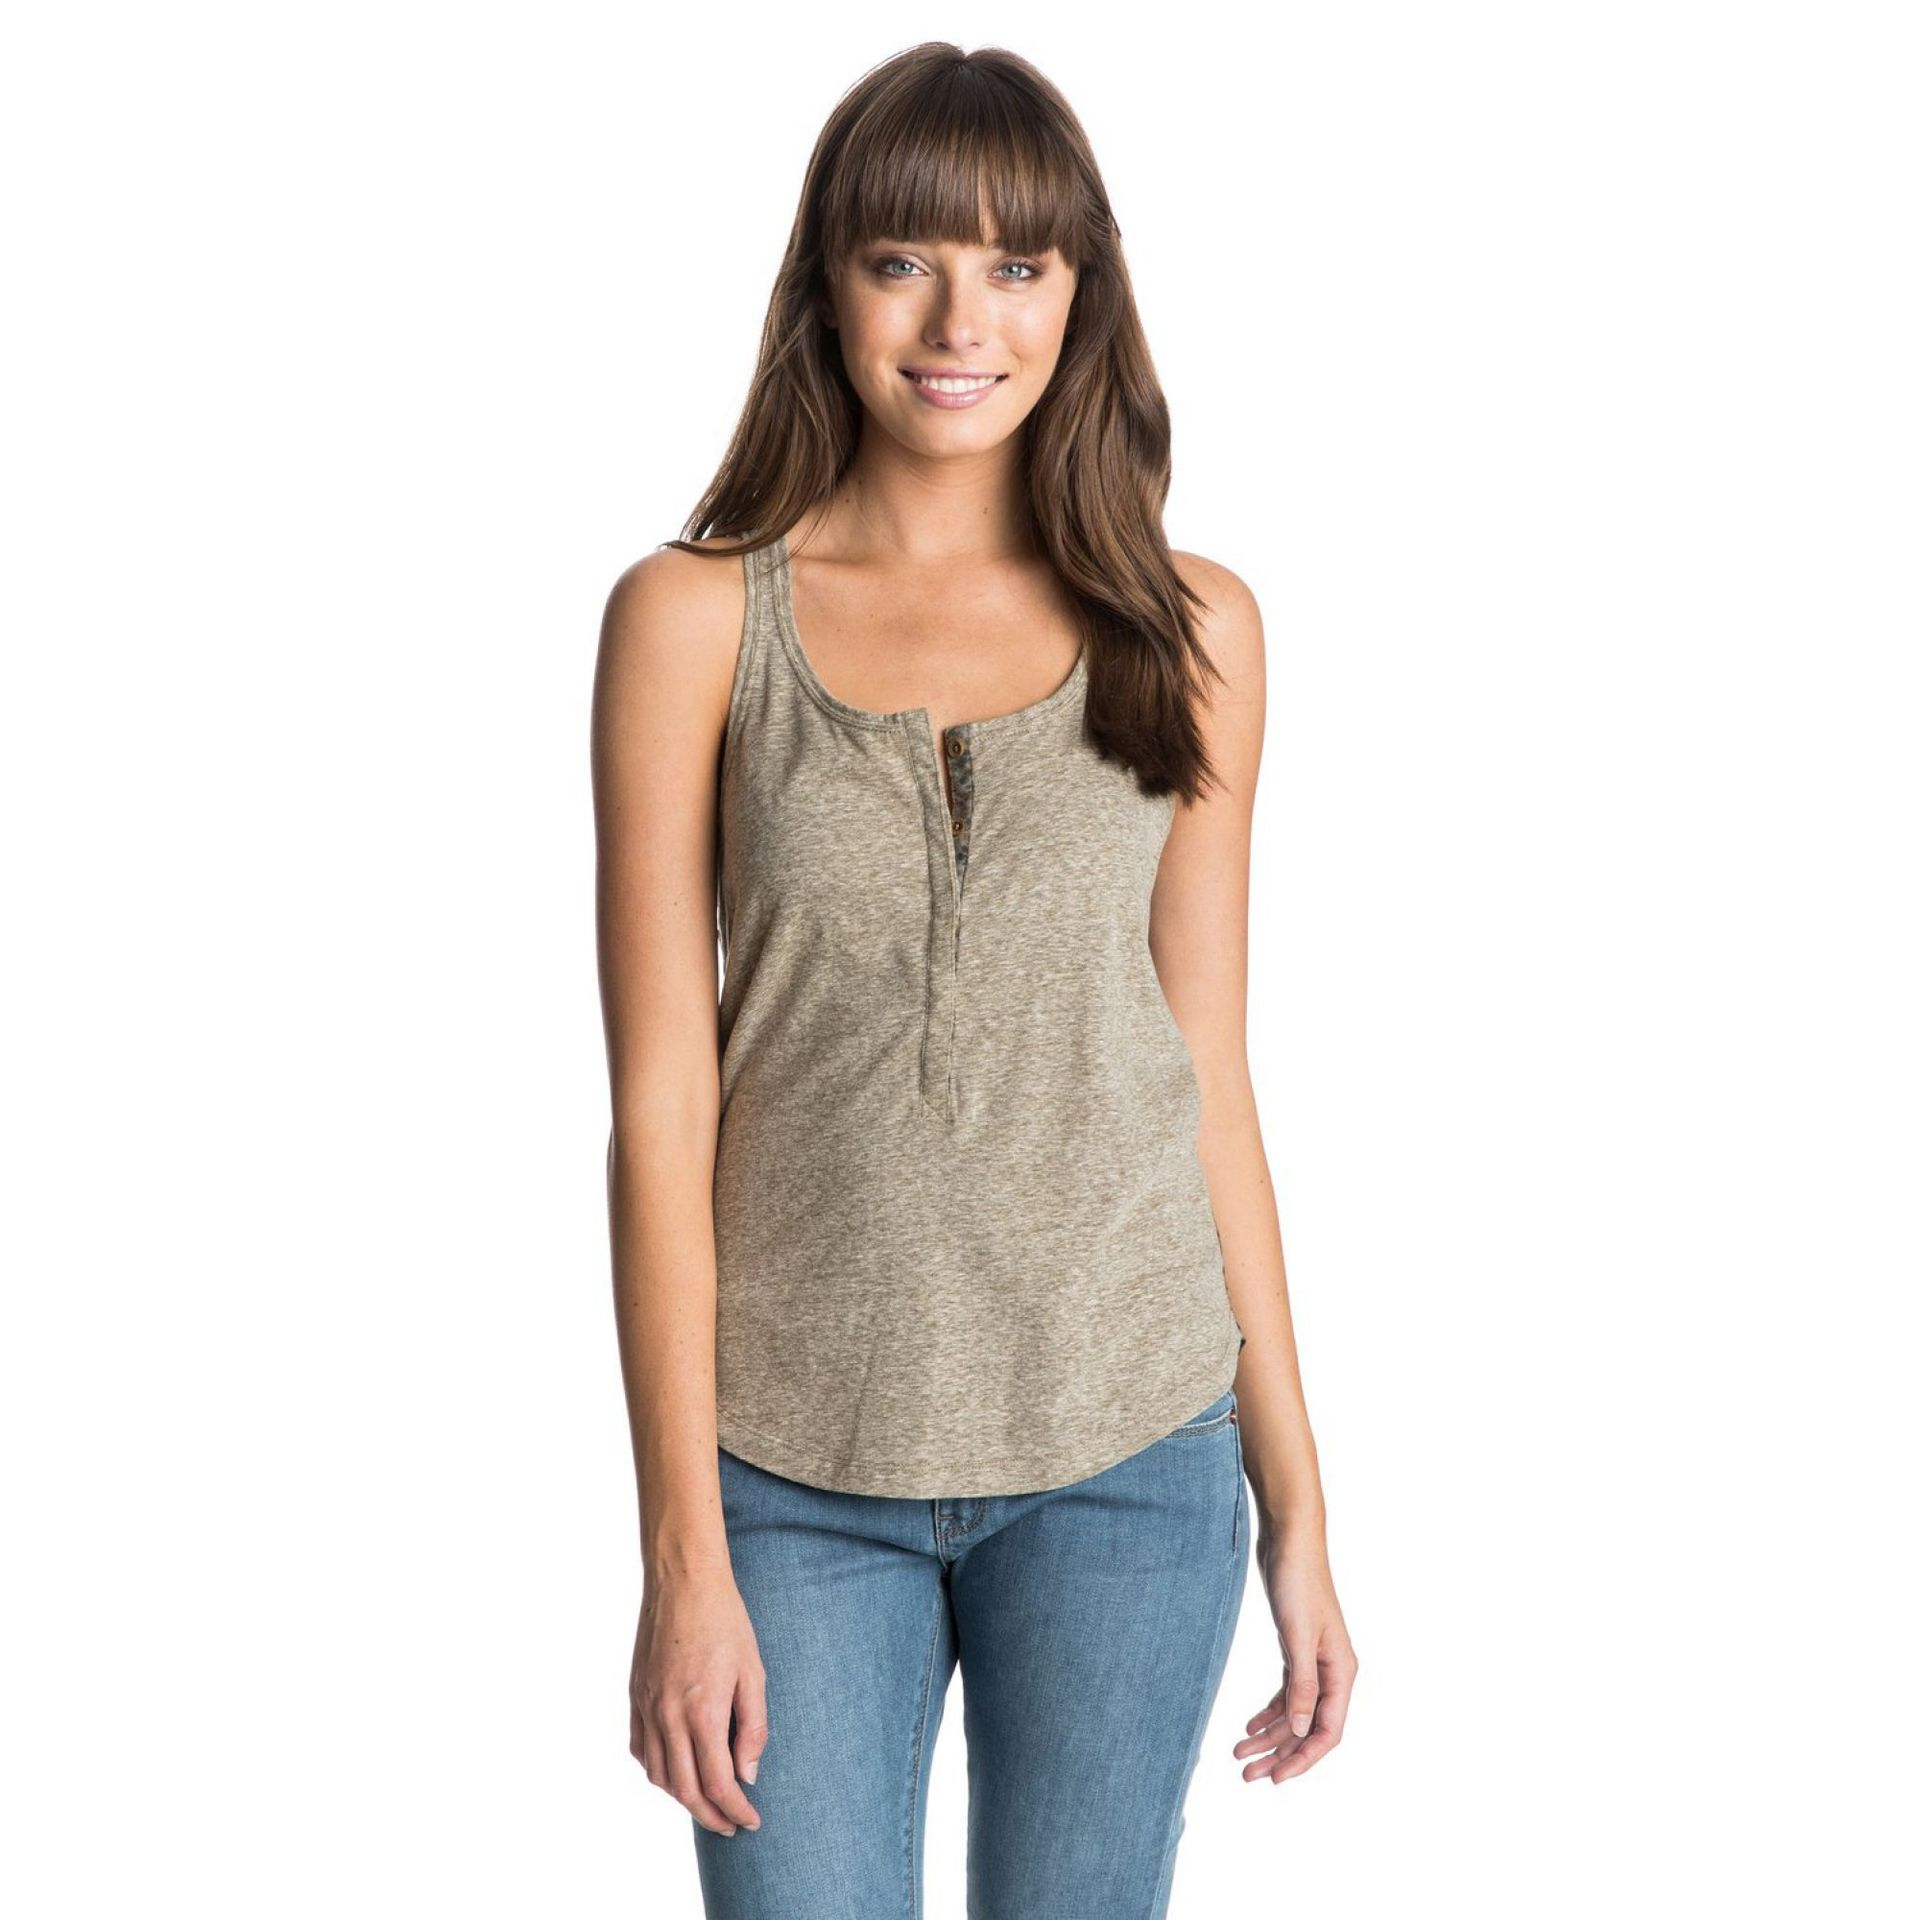 KOSZULKA TOP ROXY STONE STEPS MILITARY OLIVE